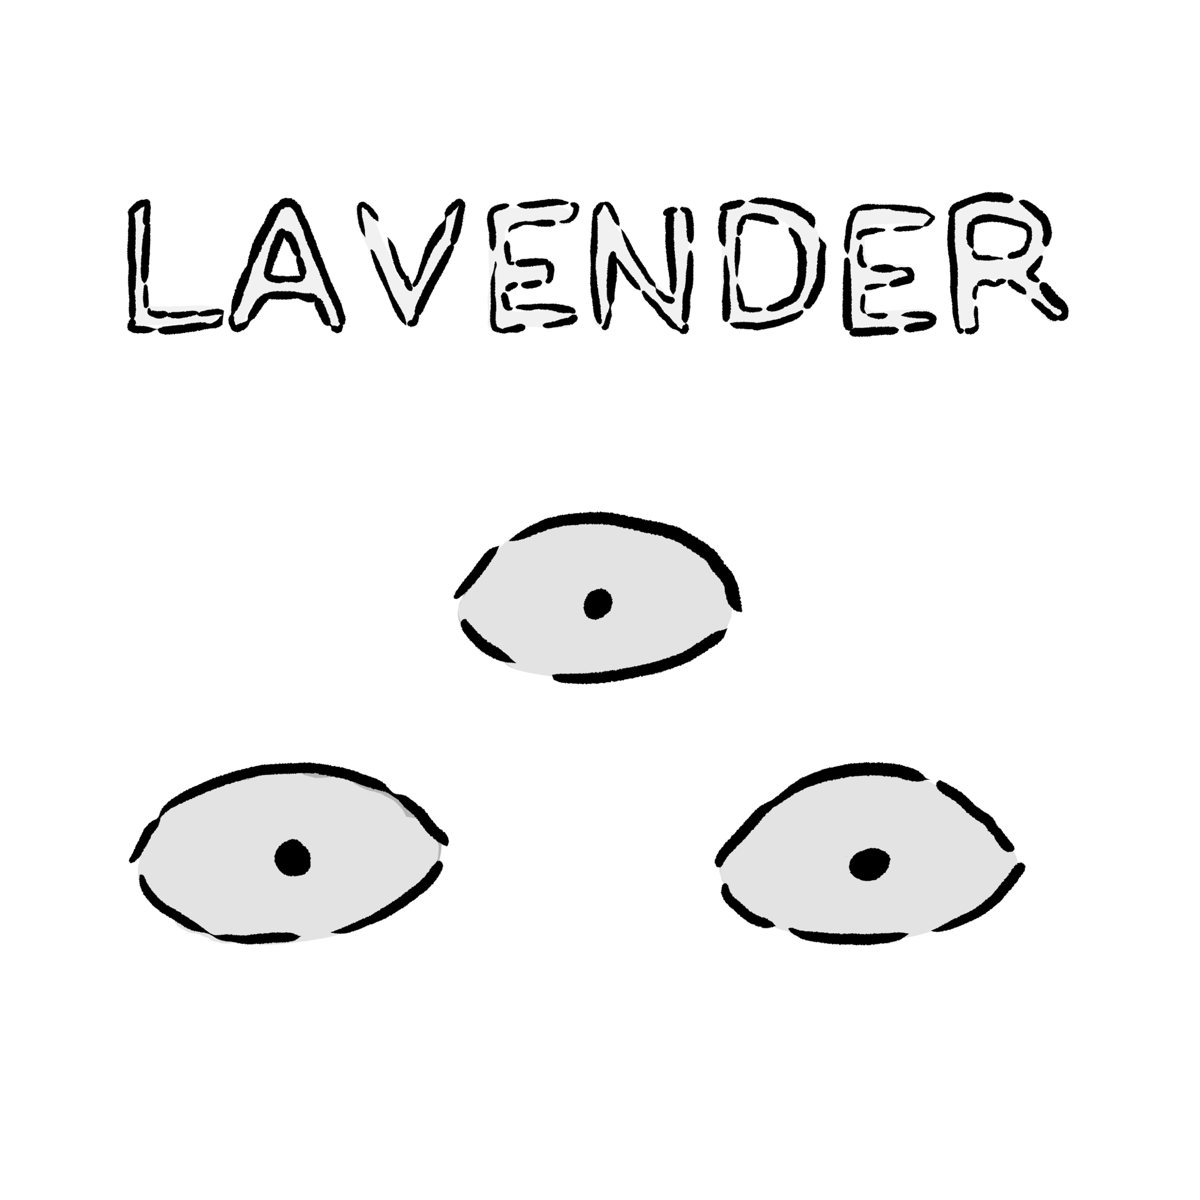 Lavender, My First 24-Hour Comic